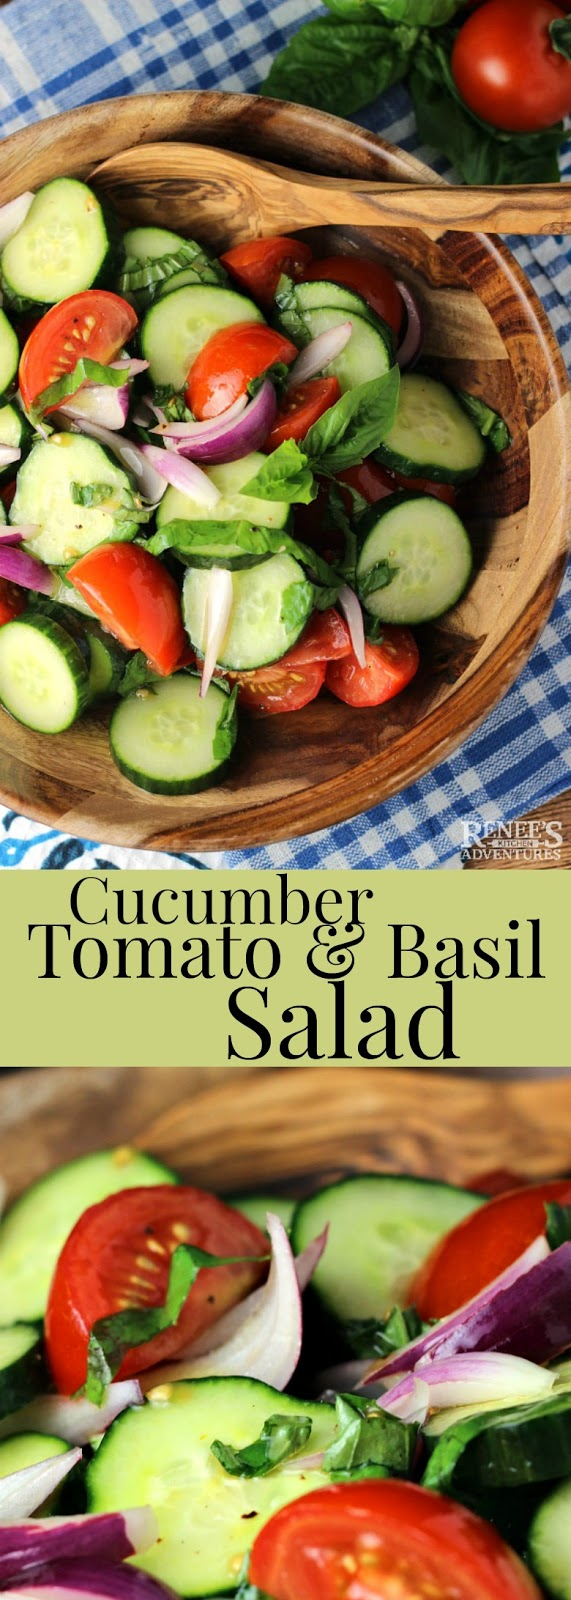 Cucumber, Tomato, and Basil Salad | Renee's Kitchen Adventures - easy recipe for a fresh summer salad made with cucumbers, red-ripe tomatoes, and fresh basil.  Perfect side dish recipe for any grilled steak, chicken, or pork dish. Great as a vegetarian lunch!